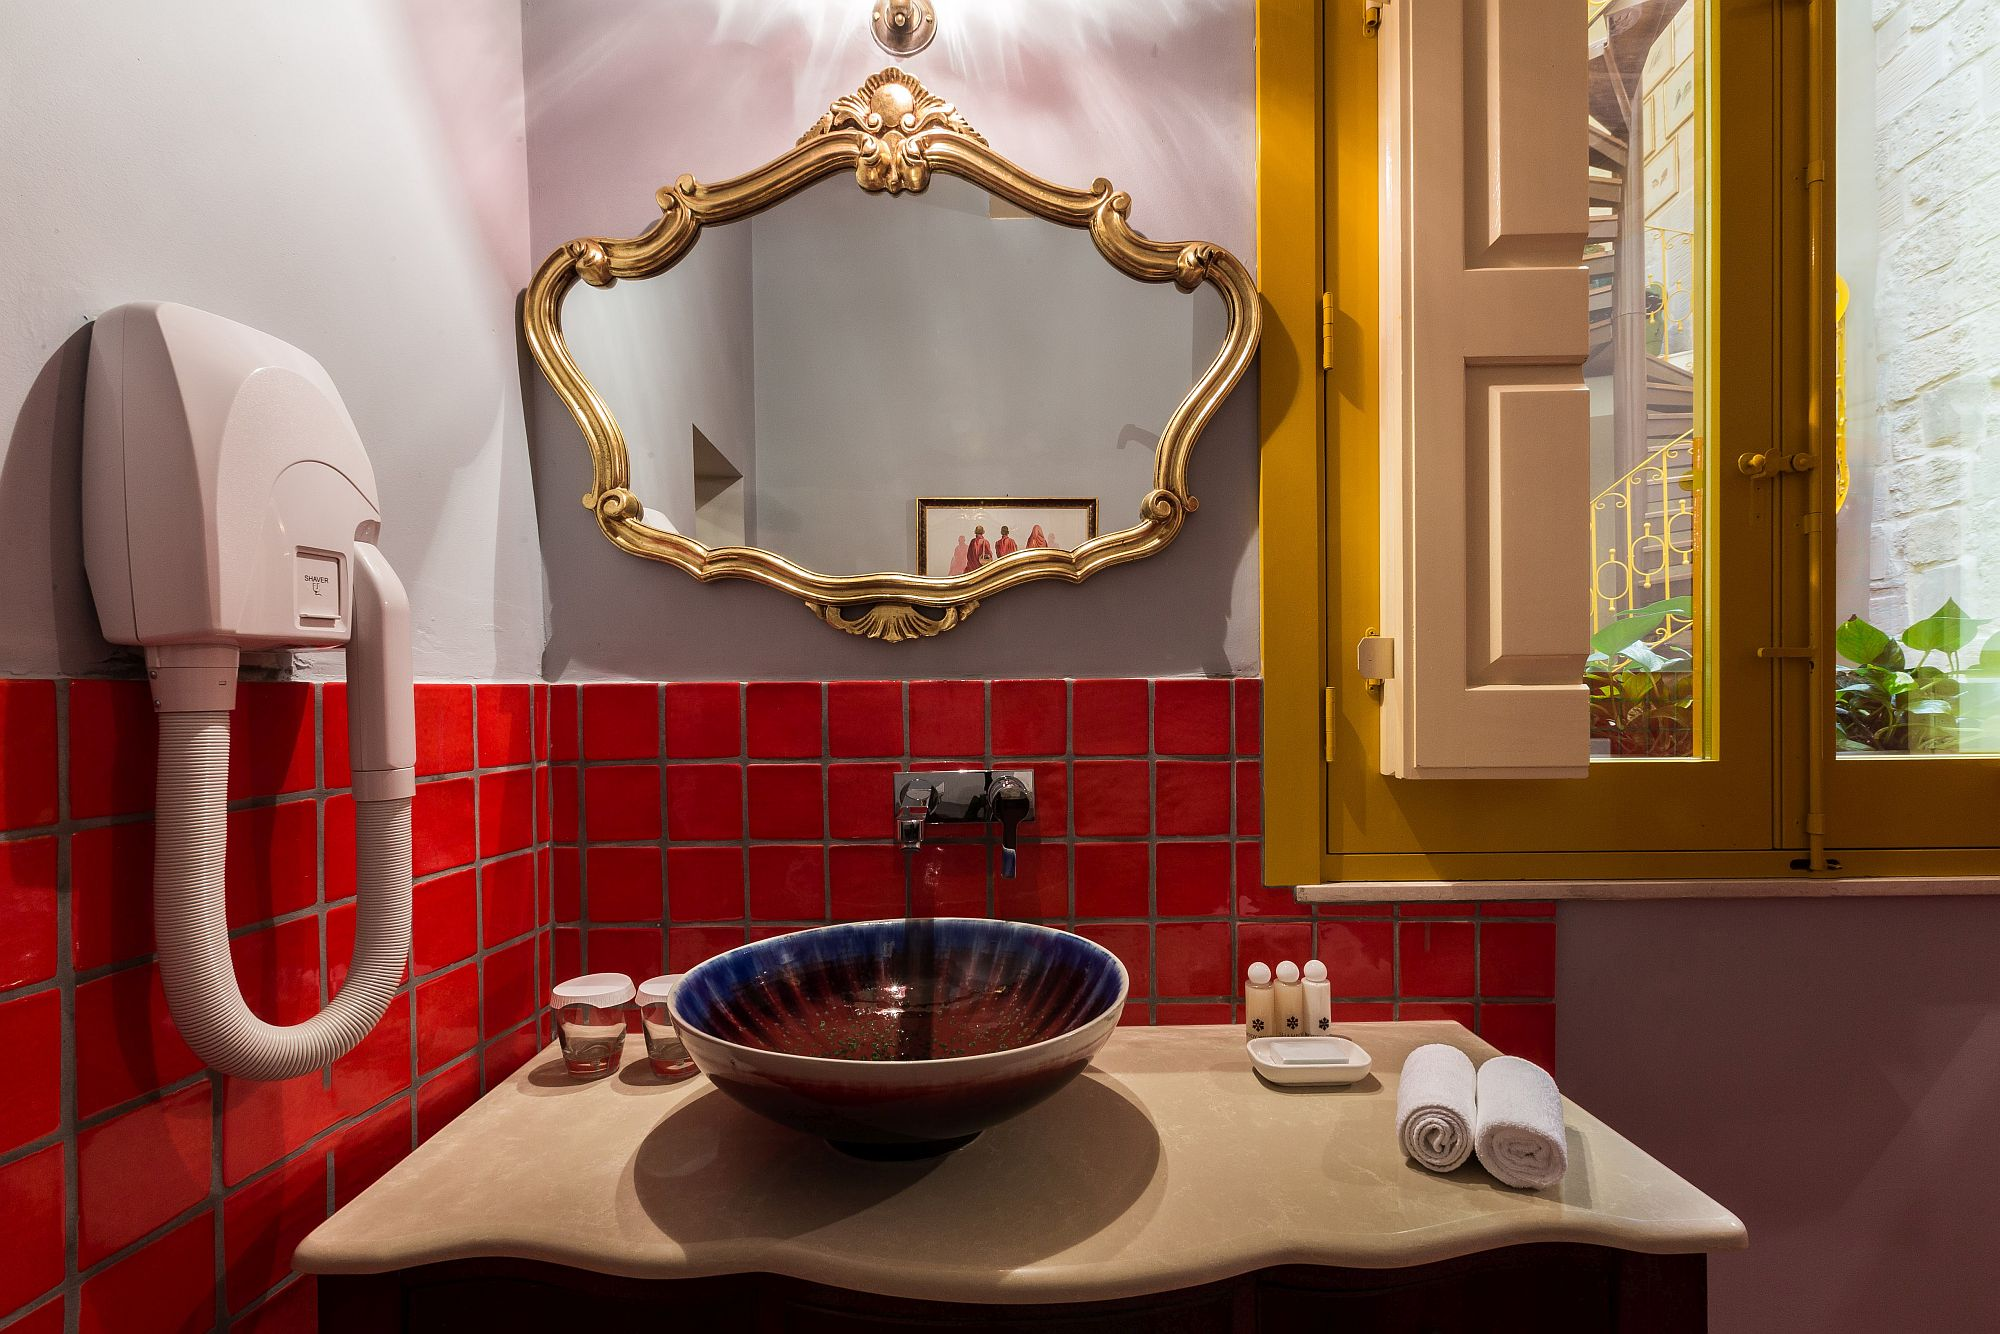 Gray and red bathroom with classic mirror and beautiful stone walls